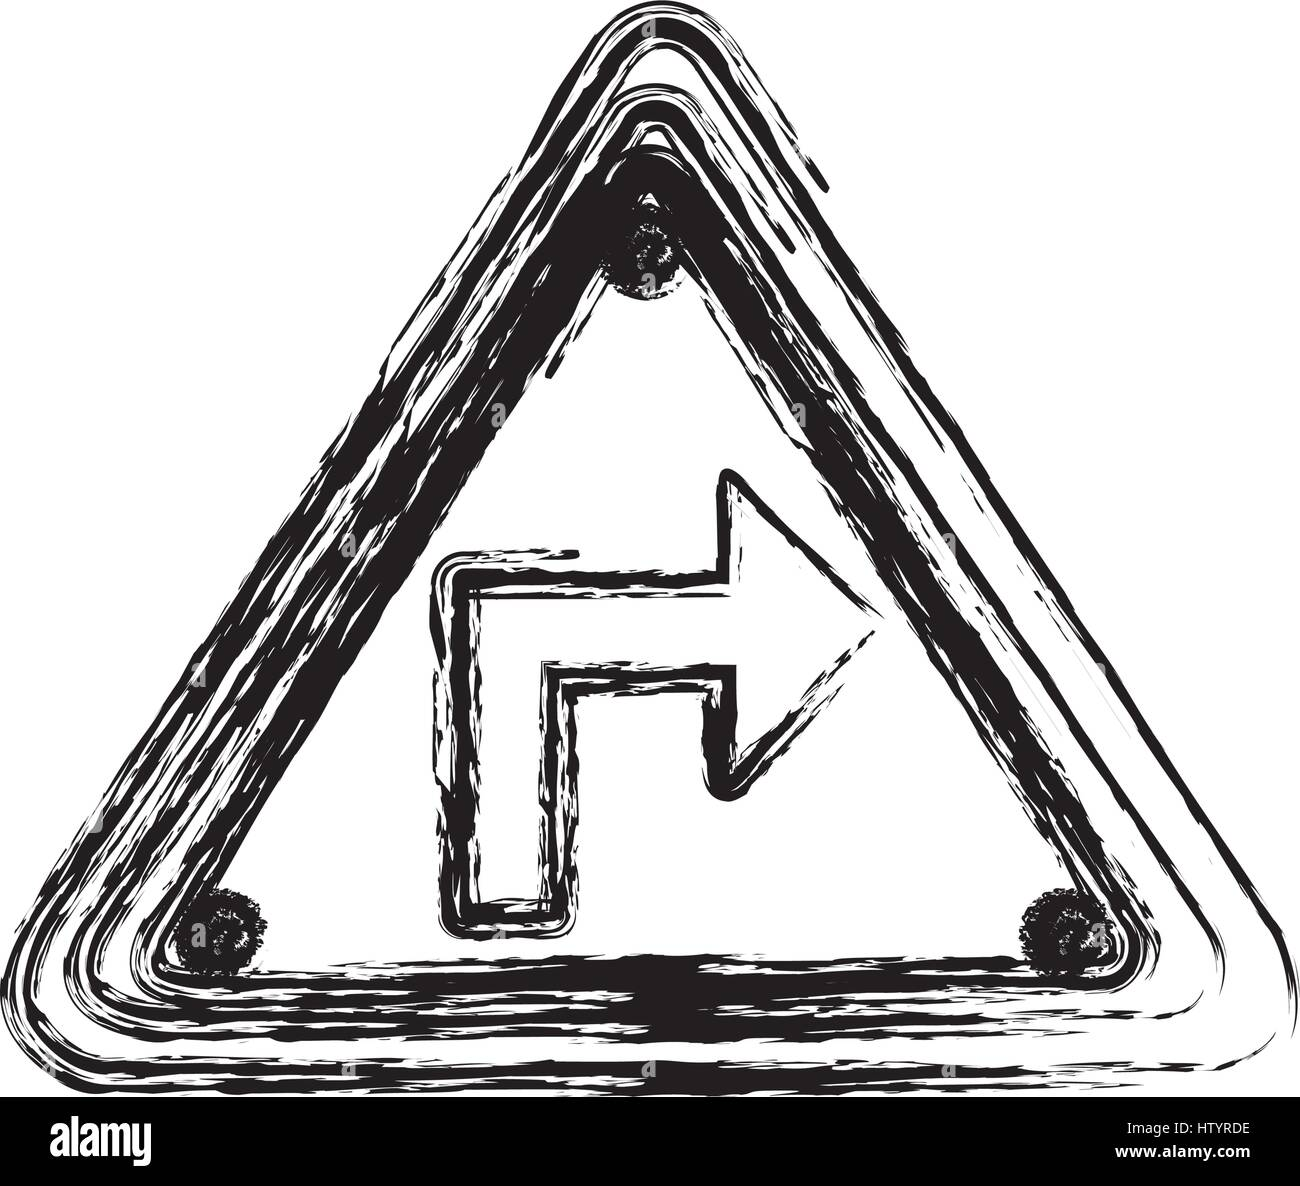 Right Triangle Stock Photos & Right Triangle Stock Images - Alamy